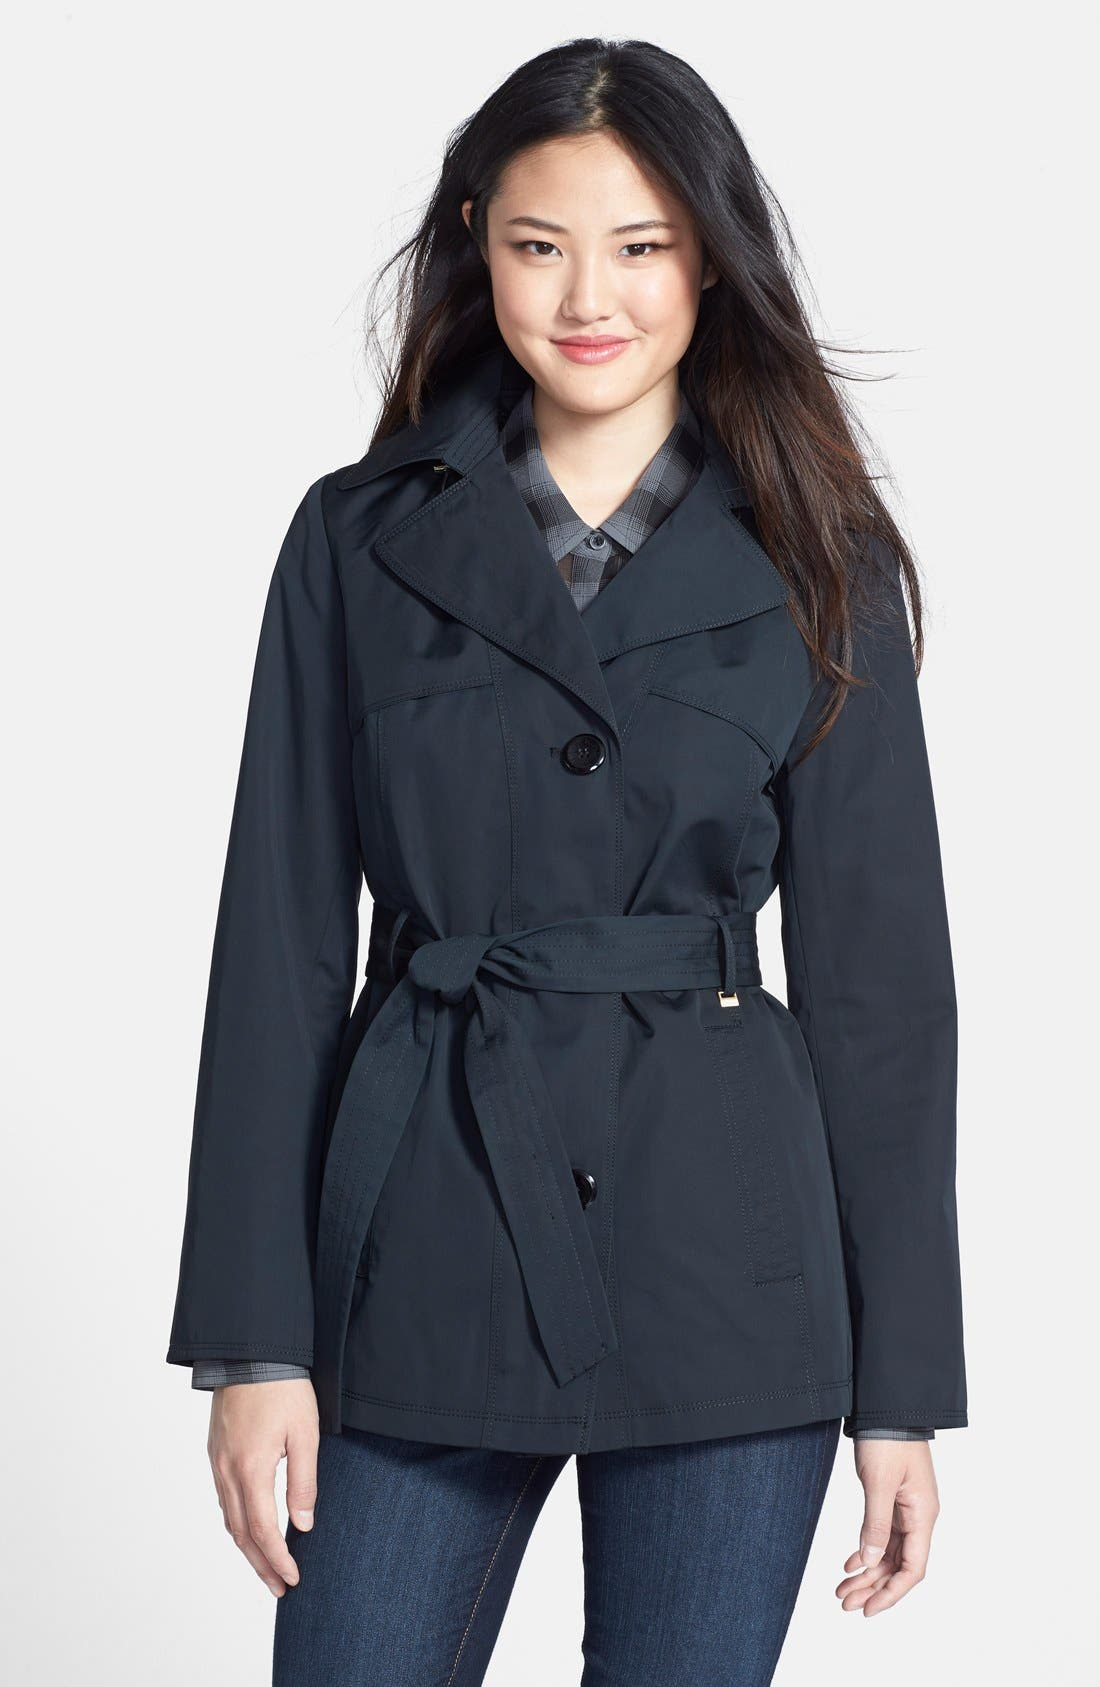 Main Image - Ellen Tracy Belted Mini Trench Coat with Detachable Hood (Regular & Petite) (Nordstrom Exclusive)